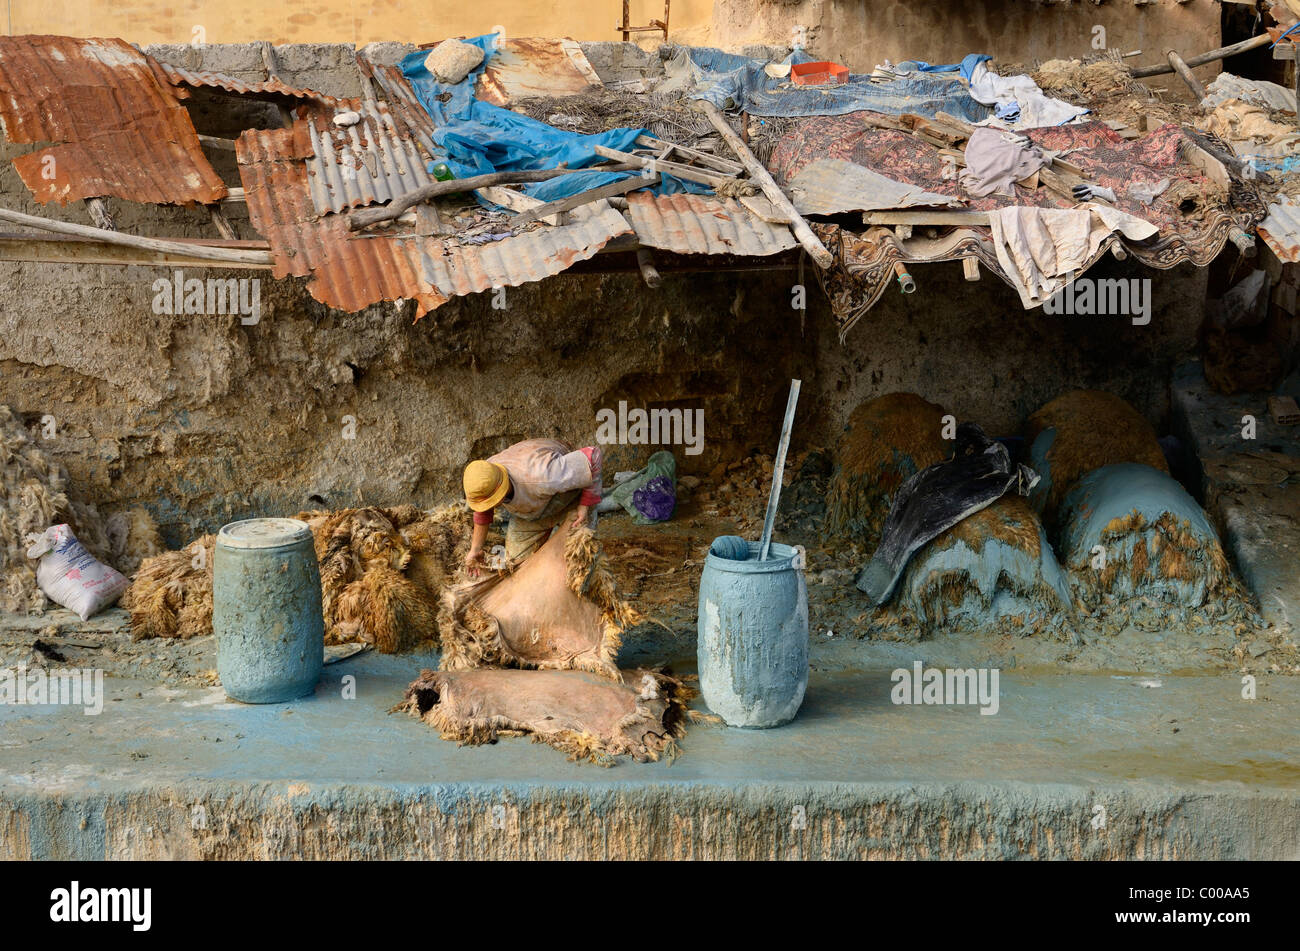 Fes leather tannery worker under decrepit roof painting raw hides with toxic blue chromium by Wadi Fes river Chouara - Stock Image